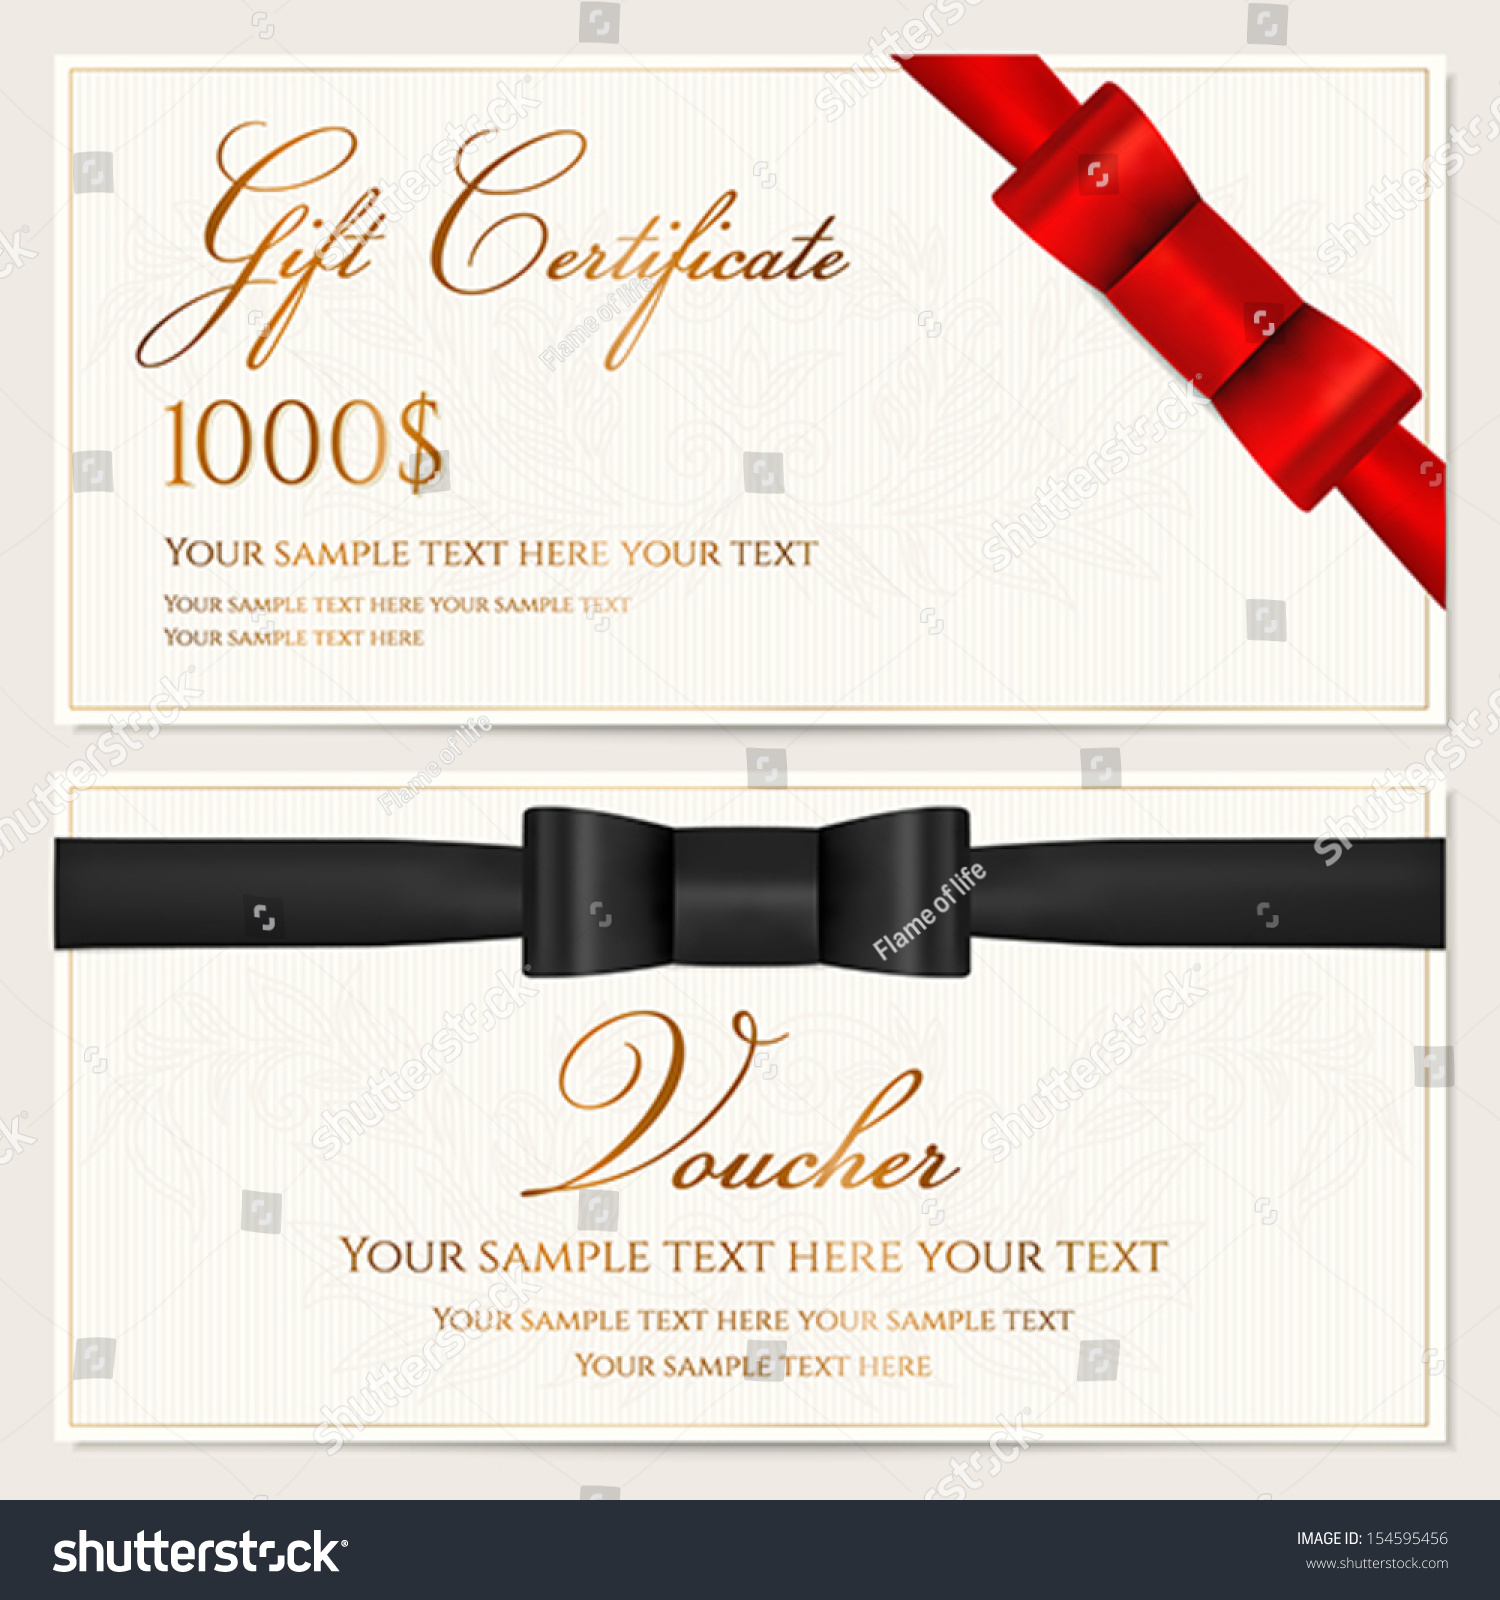 doc sample gift card doc sample gift voucher voucher gift certificate coupon invitation gift vector sample gift card